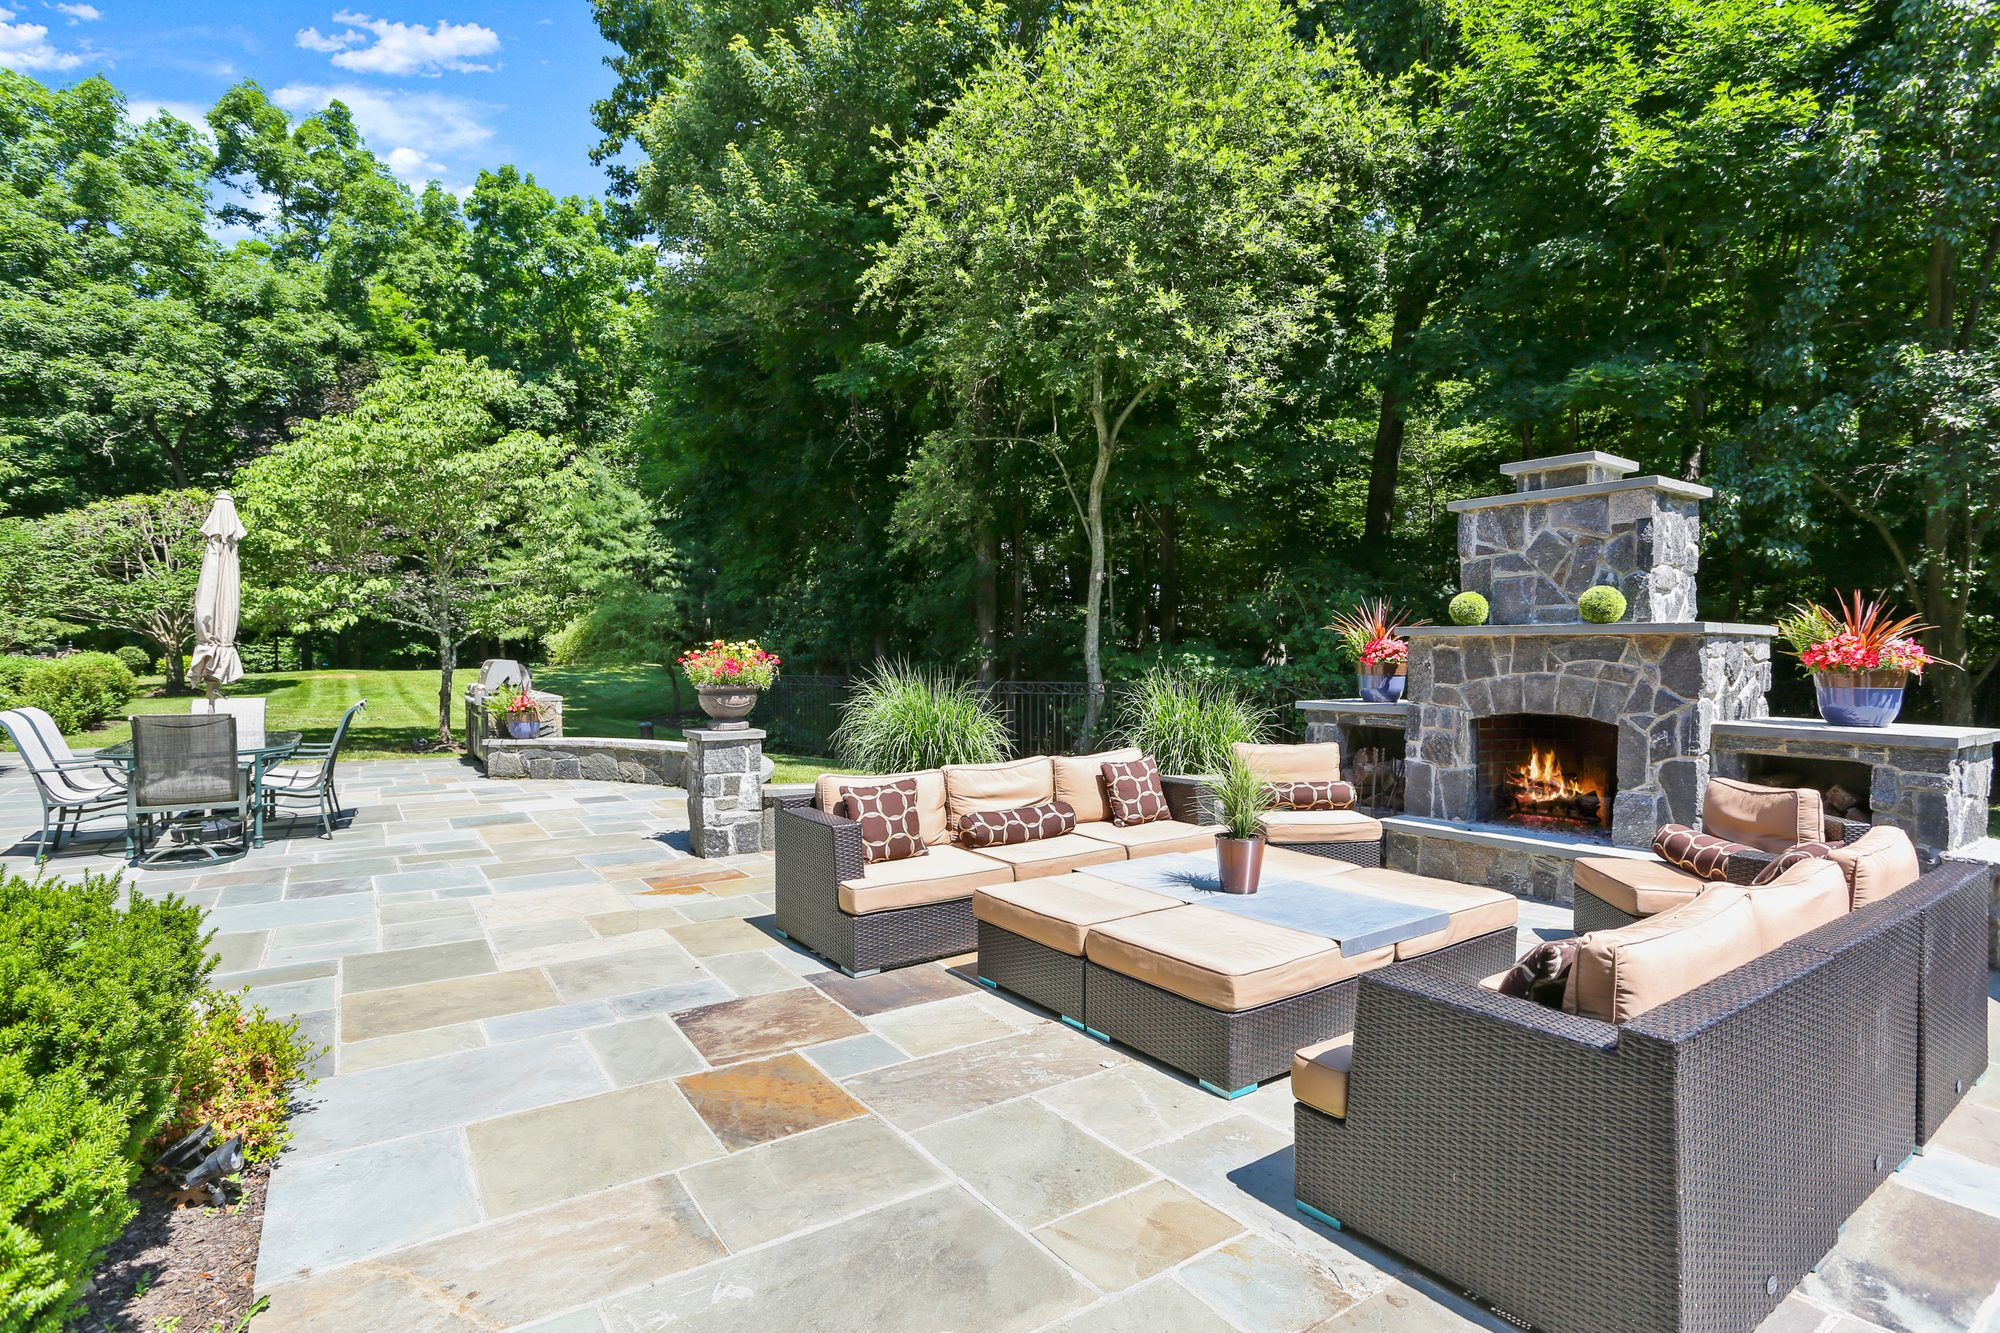 Wood burning patio fireplace built out of stone with a raised limestone hearth and matching mantle with side shelves for wood storage.